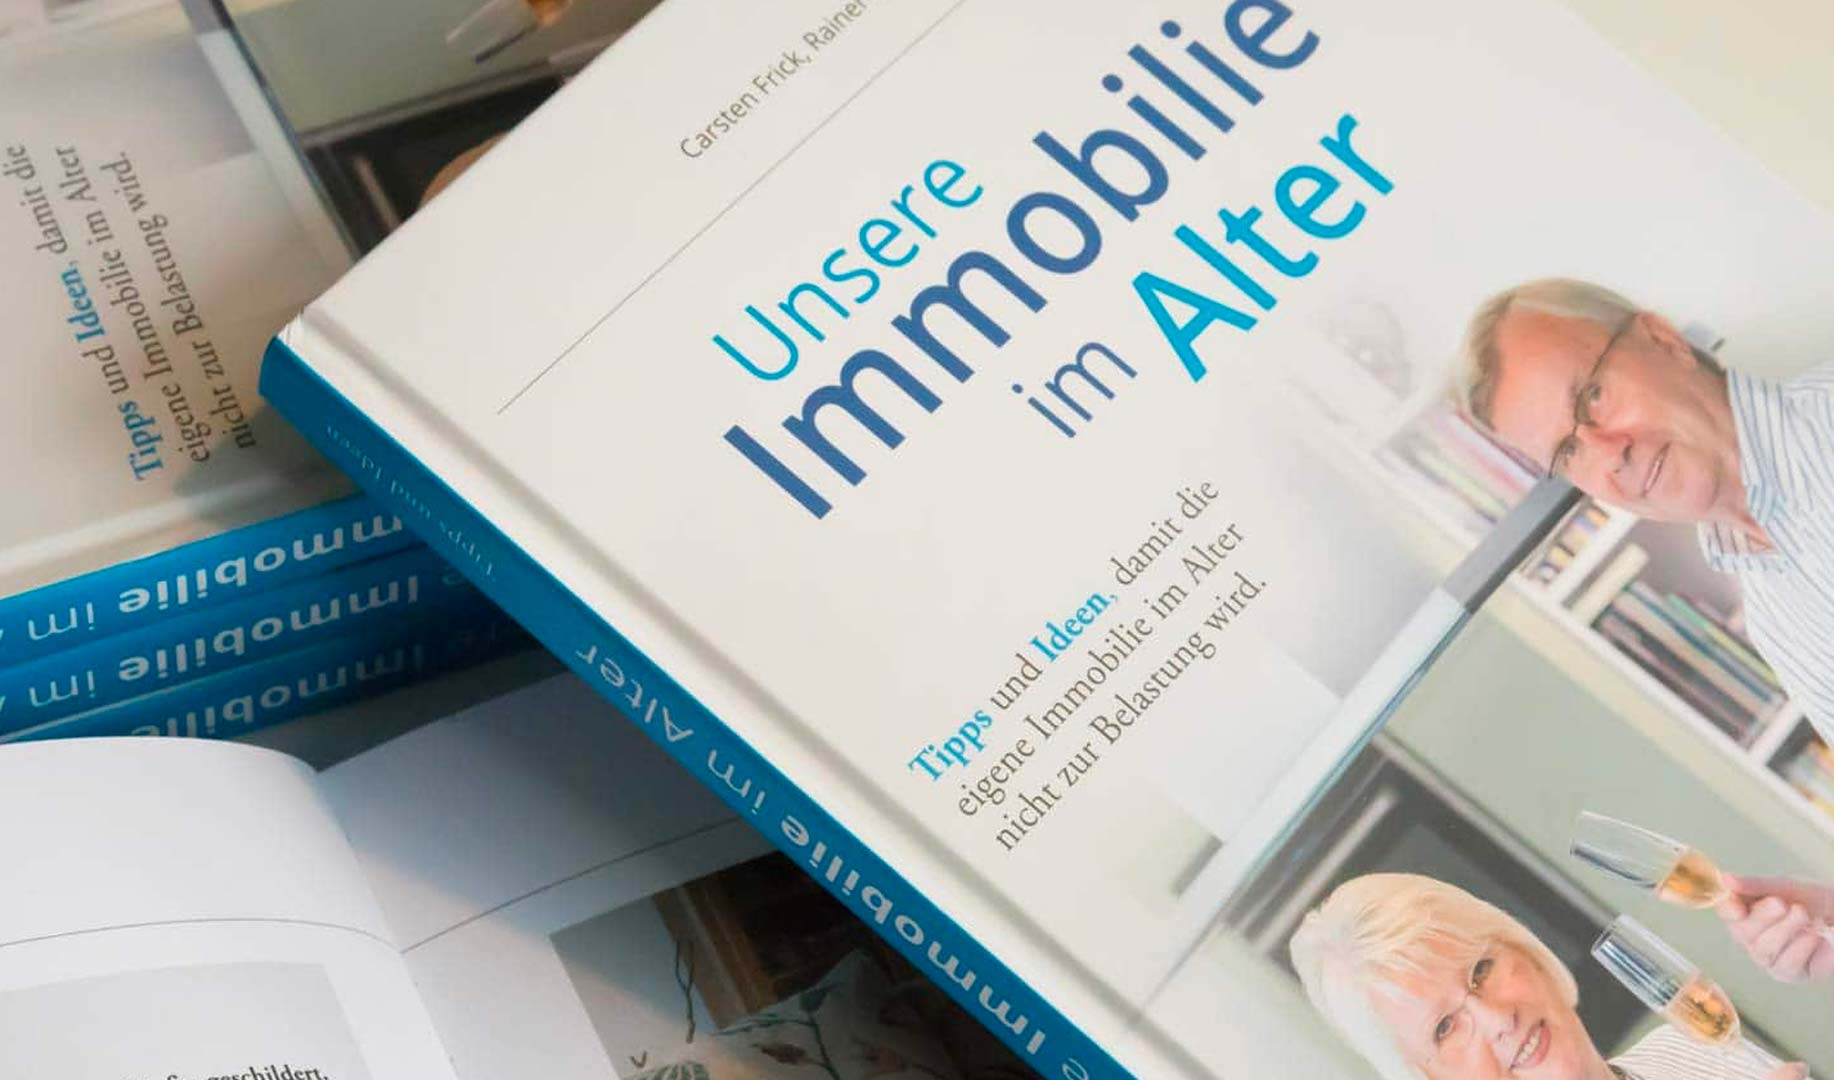 Buch: Unsere Immobilie im Alter